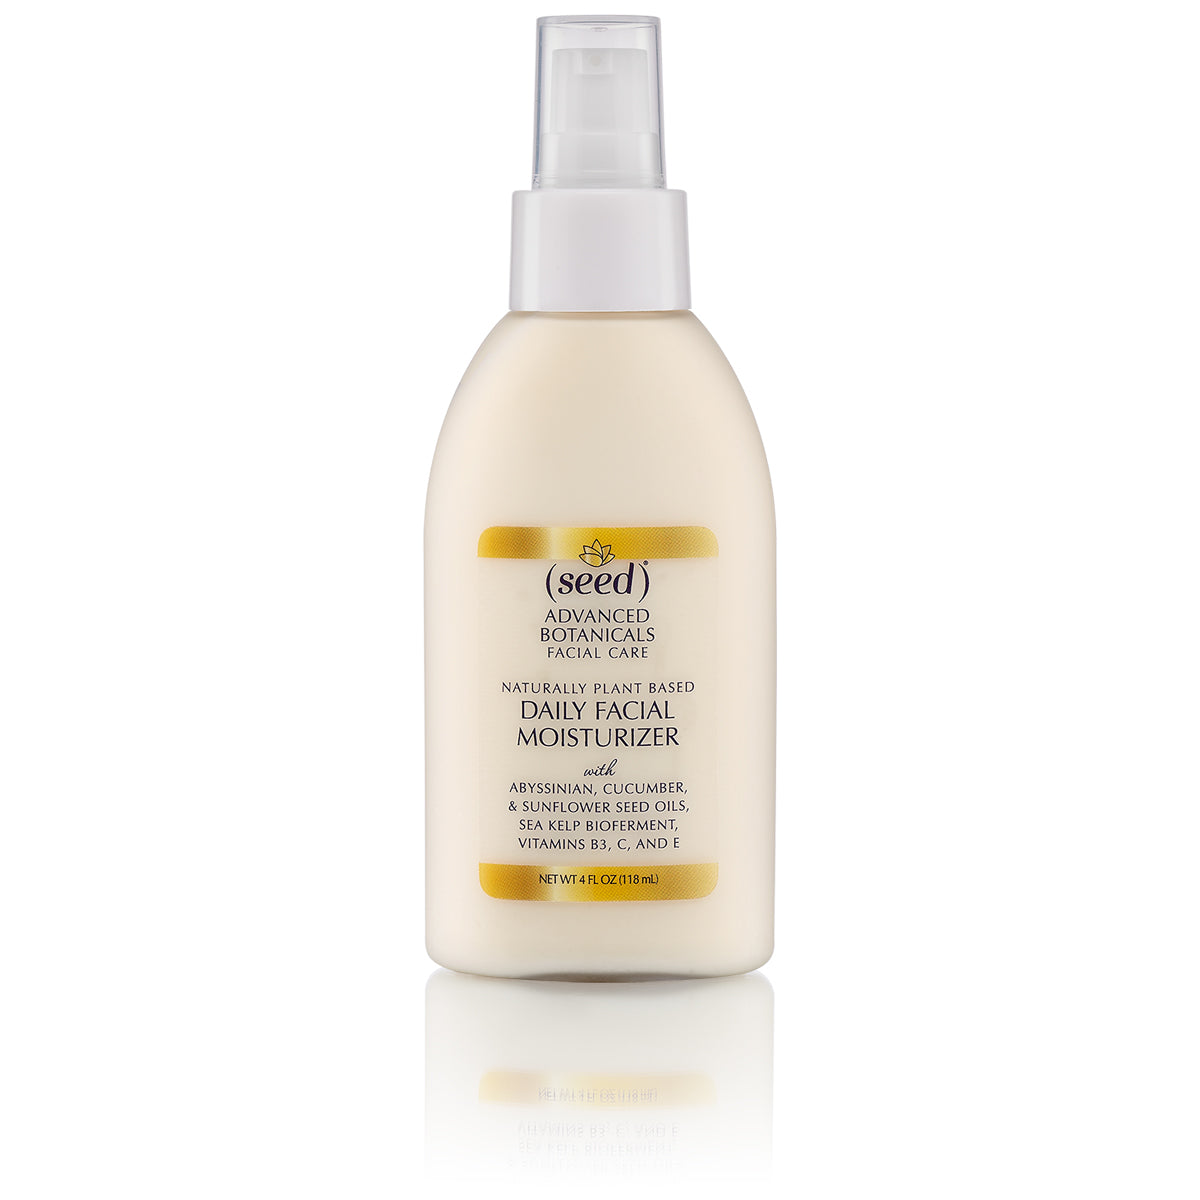 Seed Advanced Botanicals Daily Facial Moisturizing Lotion